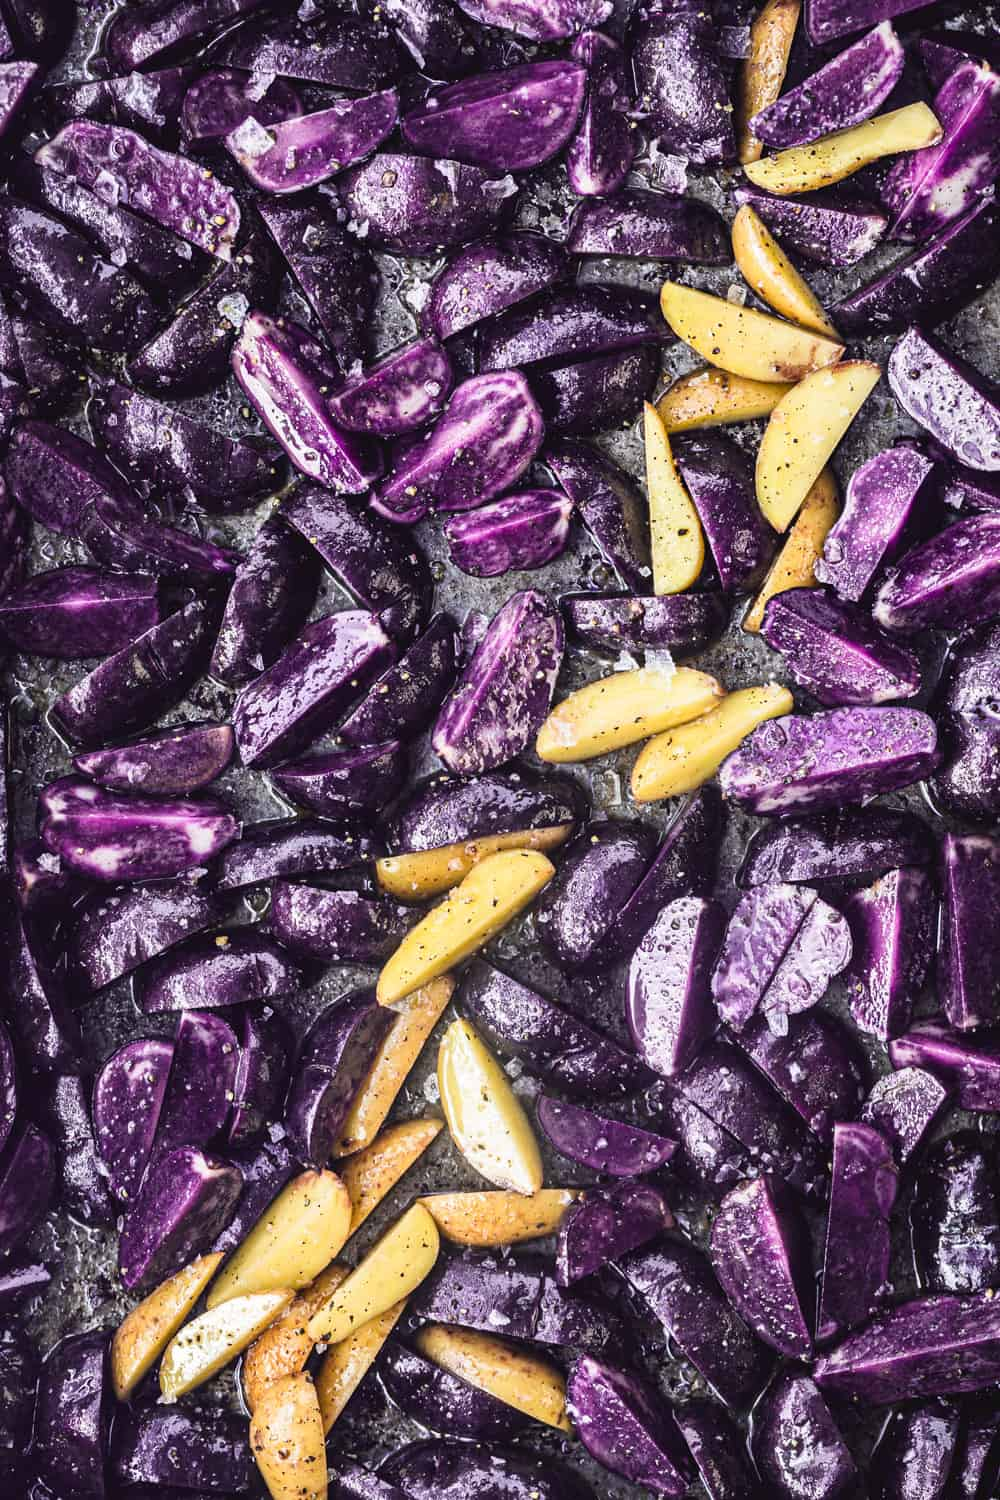 Little purple potatoes cut into wedges with a few white potatoes on the baking sheet as well; overhead shot.